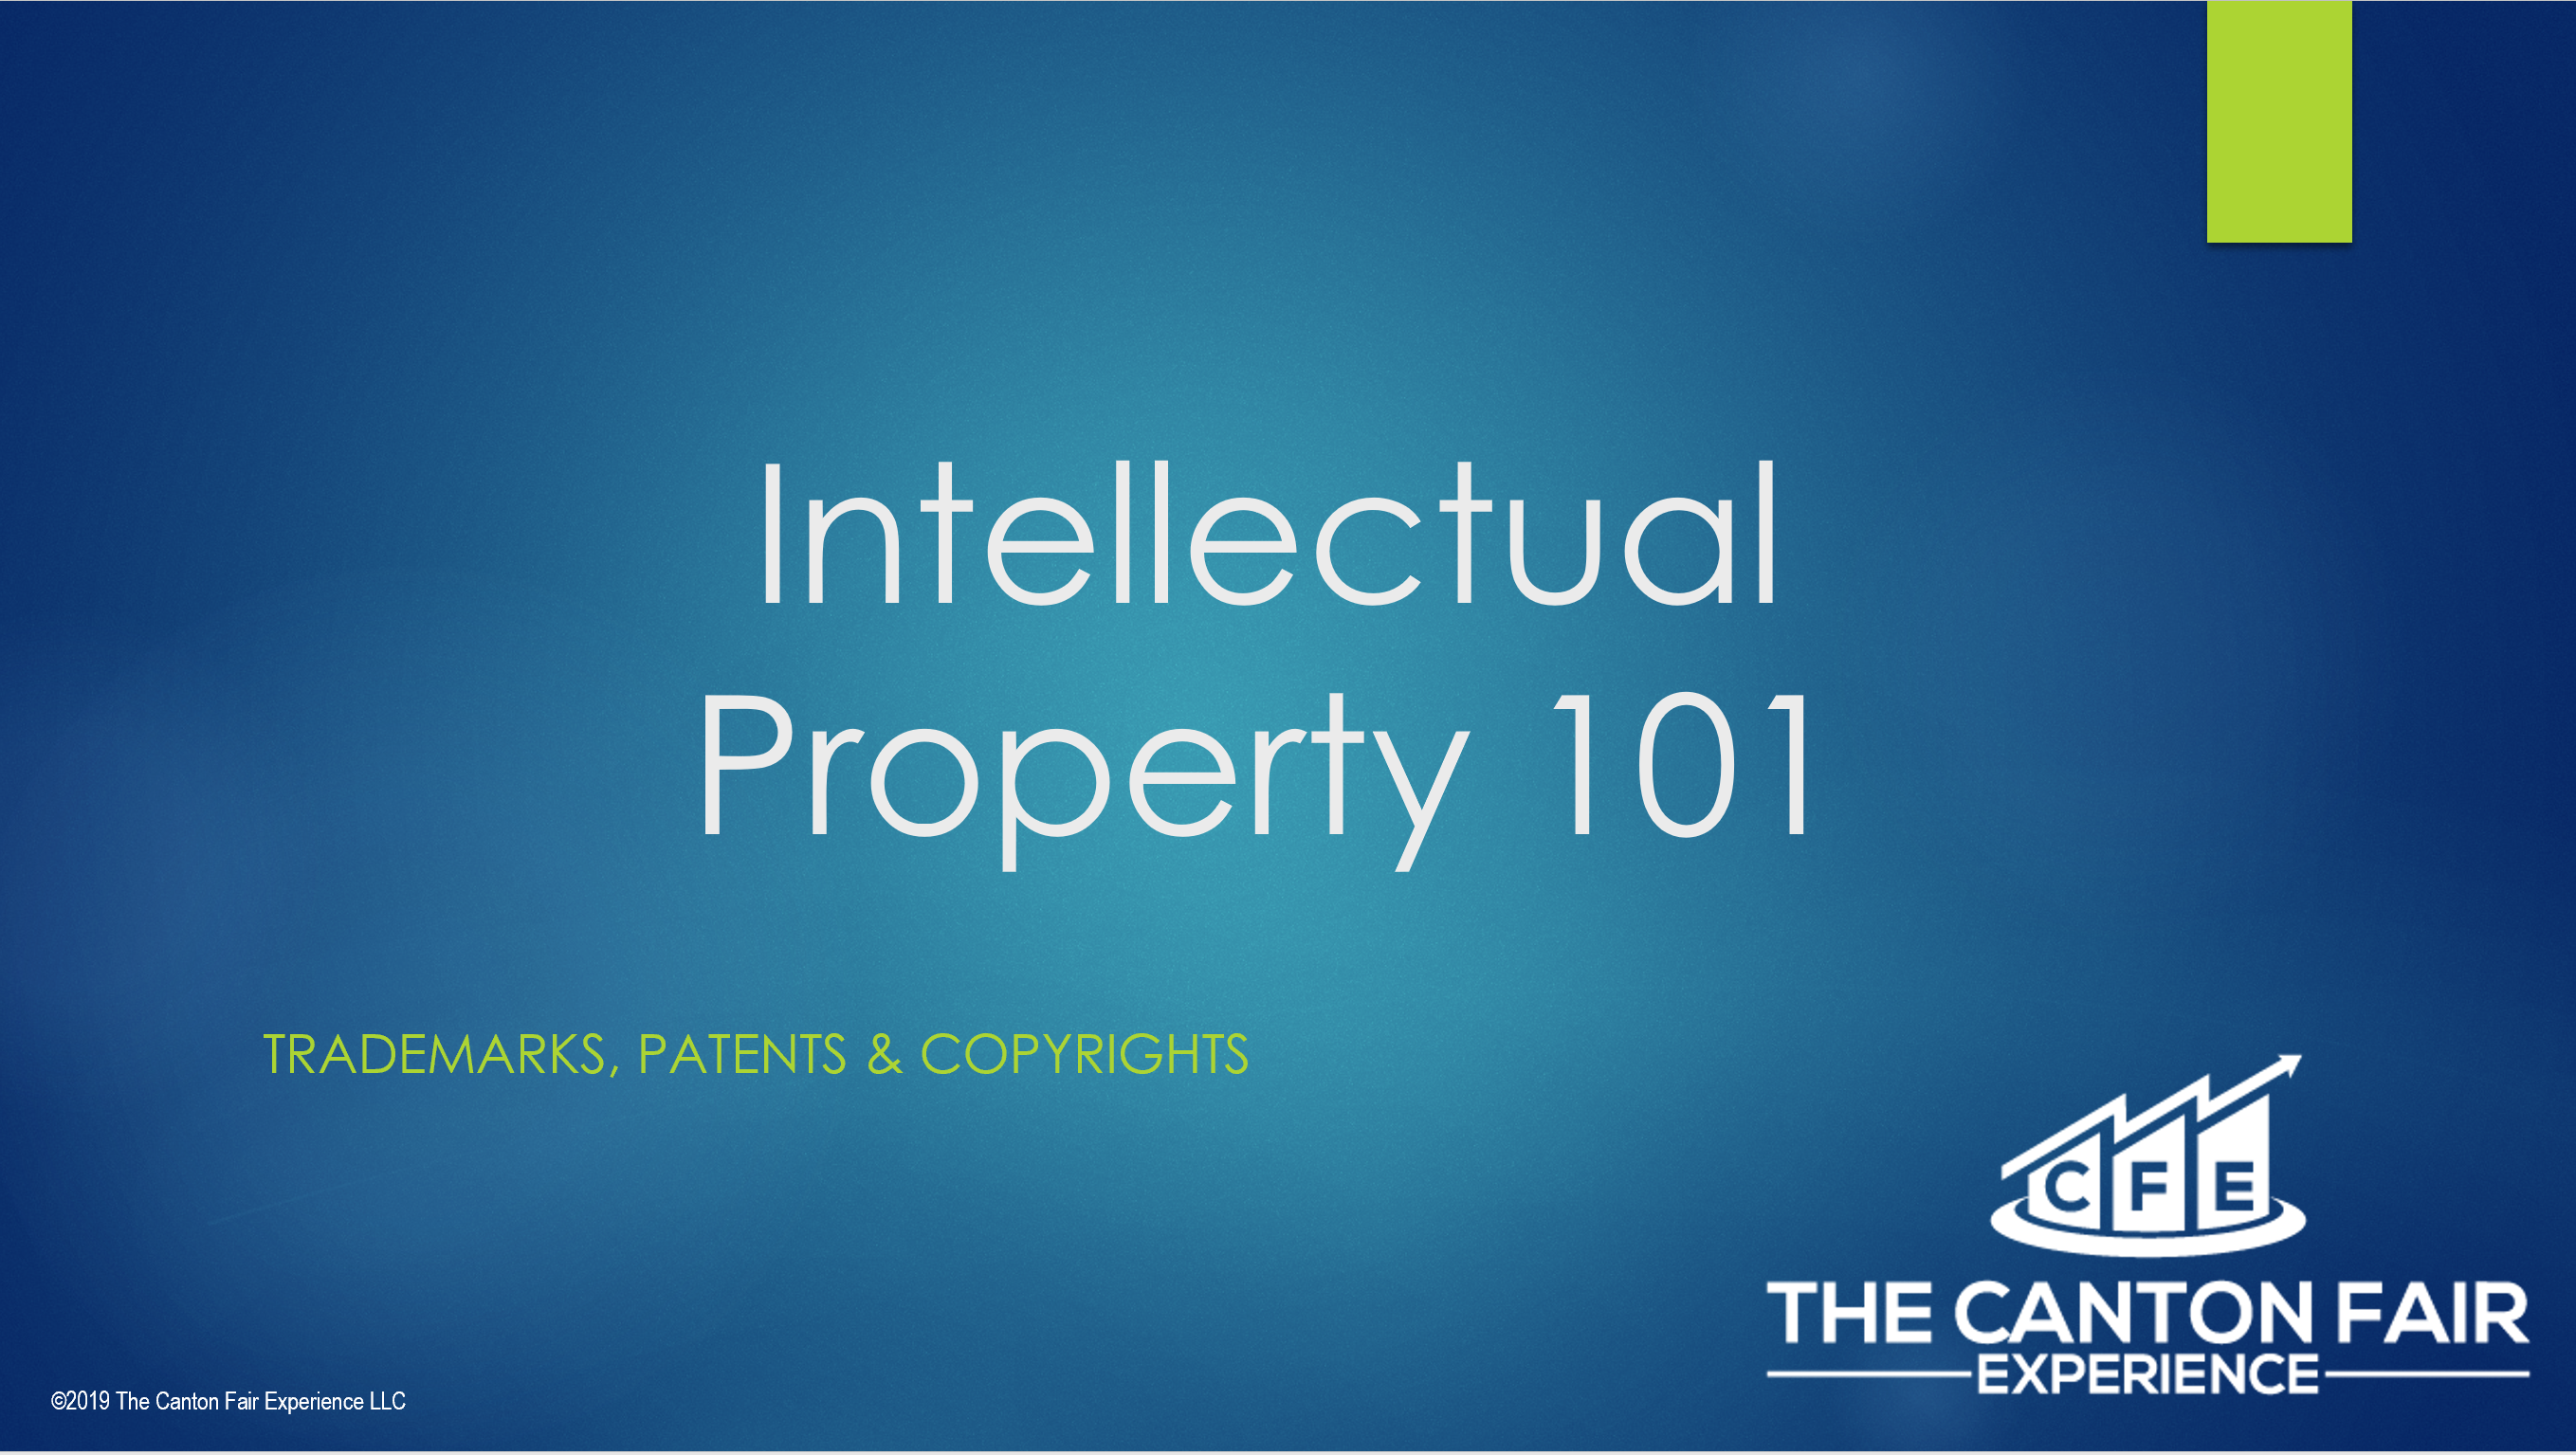 Patents, Trademarks & Copyrights – Understanding Intellectual Property